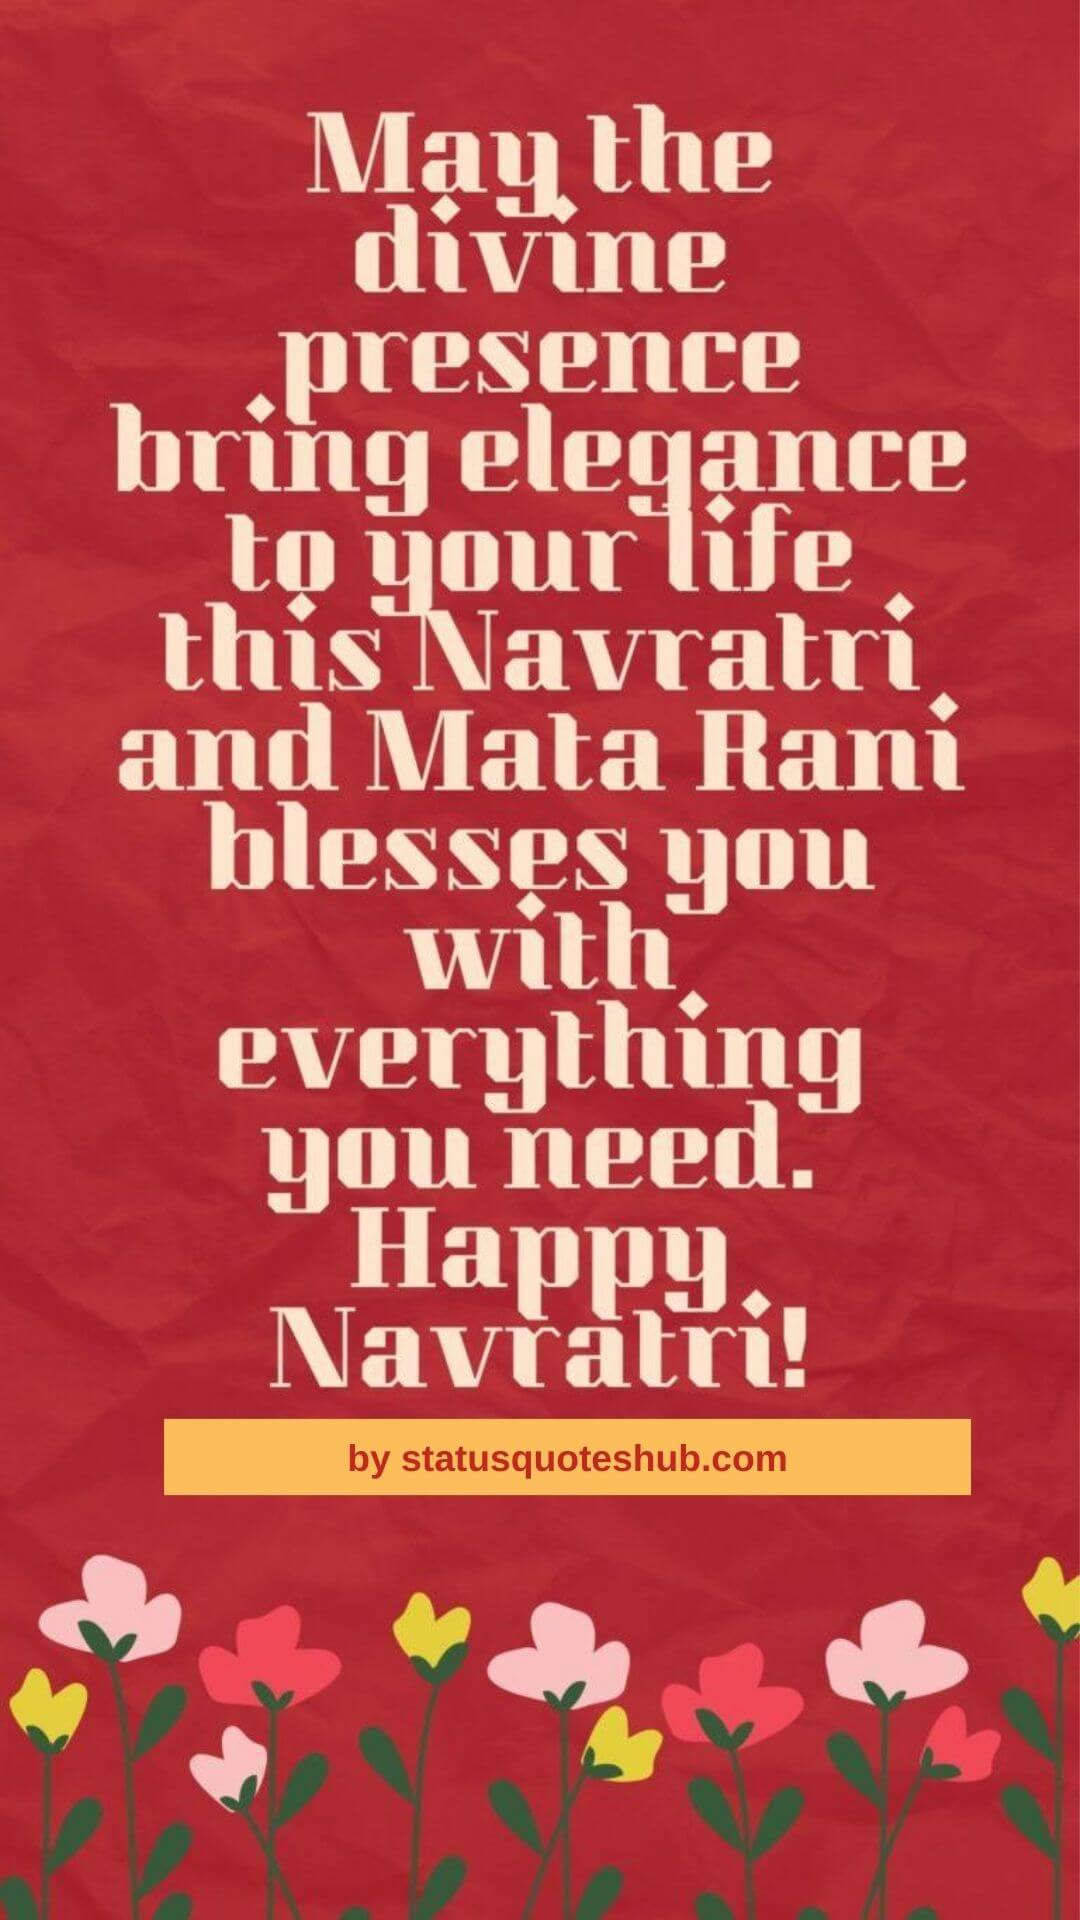 Navratri quotes and wishes